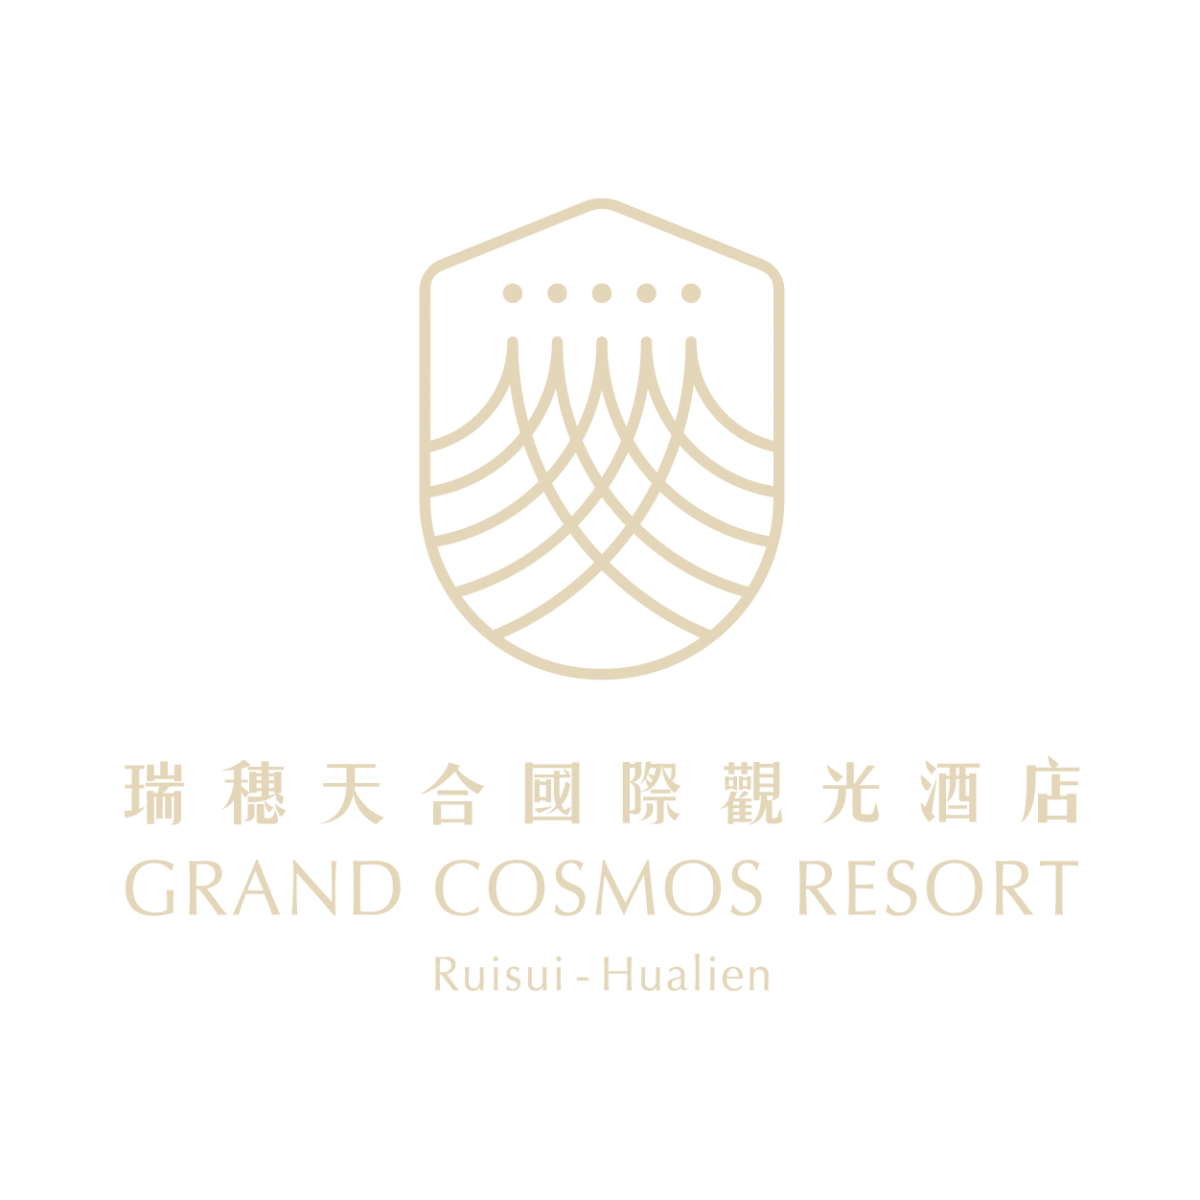 Grand Cosmos Resort Ruisui, Hualien 瑞穗天合國際觀光酒店